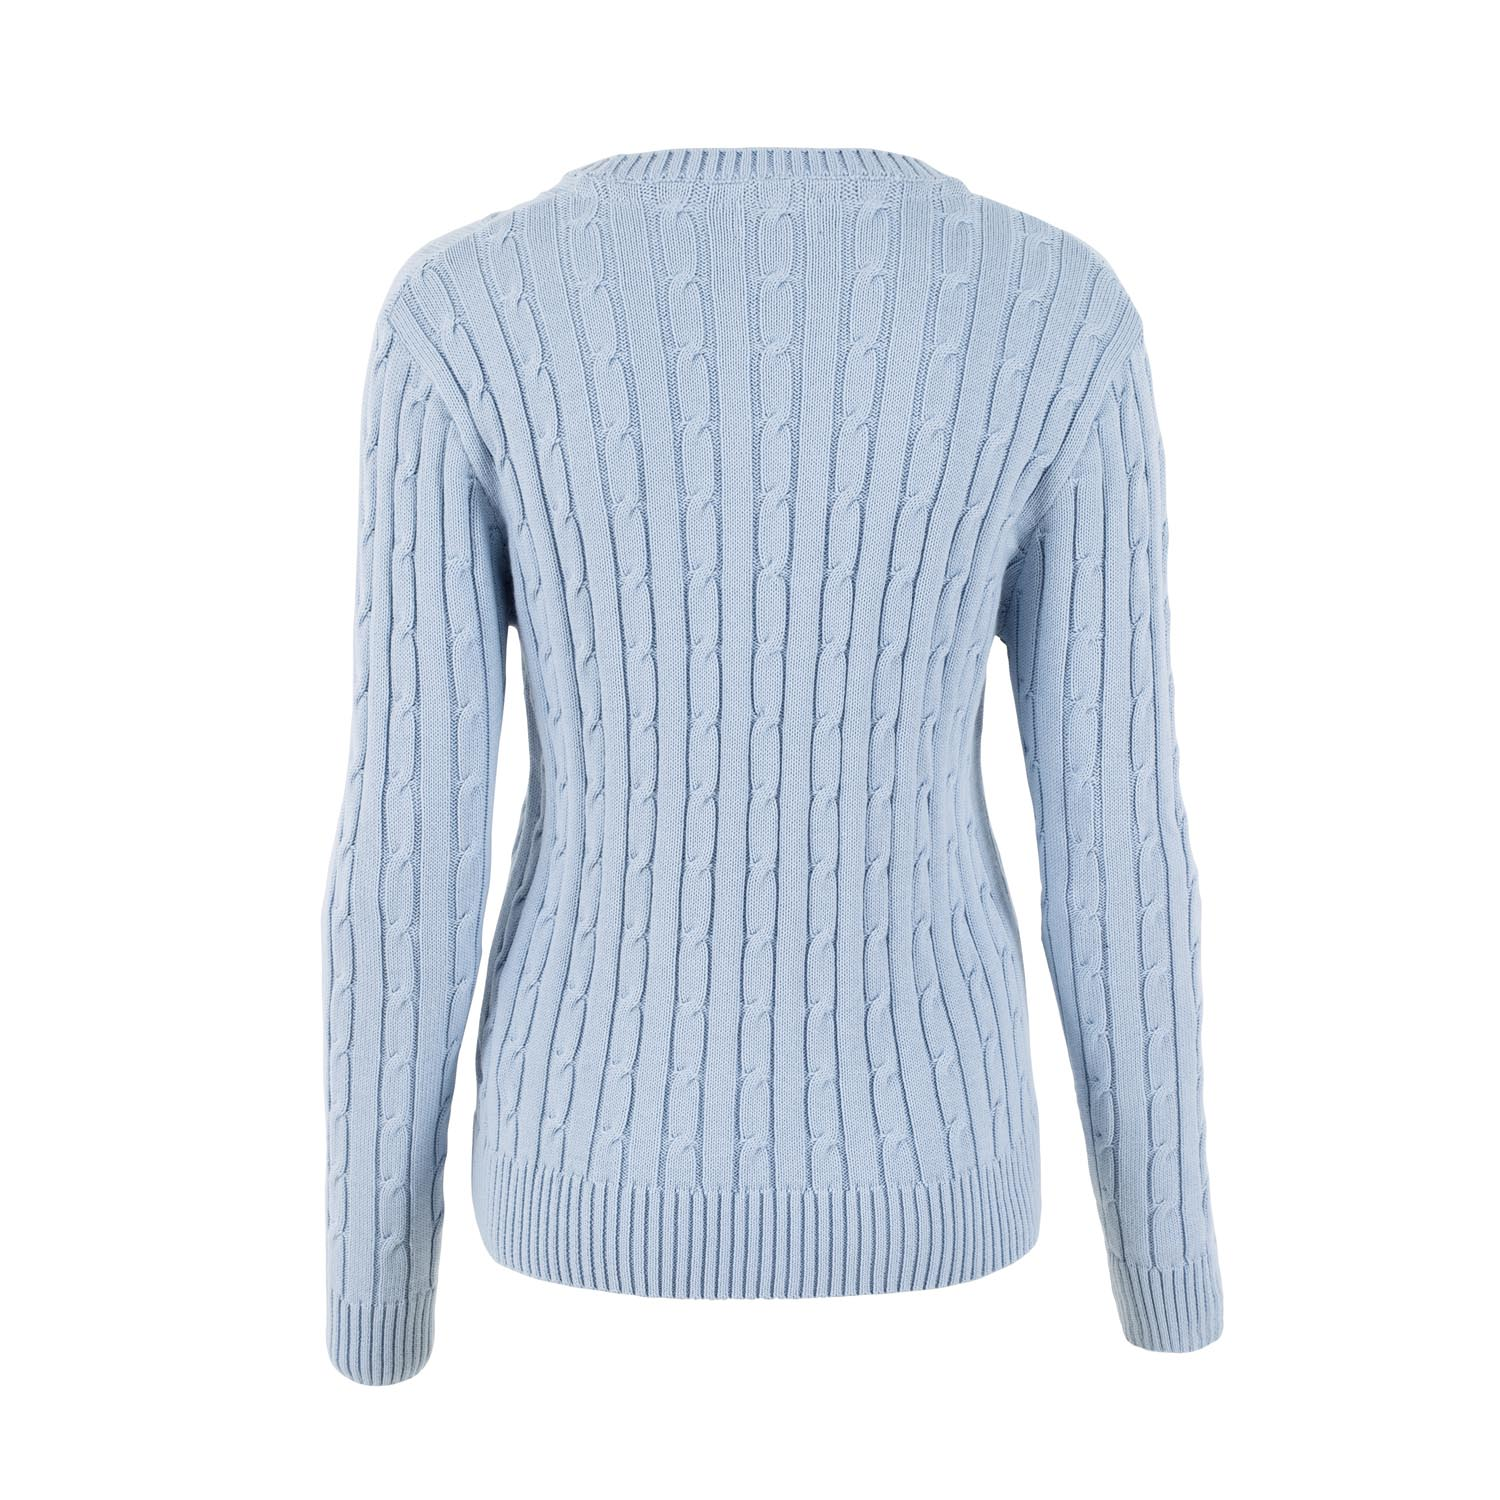 efd601193741 Cotton Cable Jumper - Lightweight, ideal for your summer wardrobe!